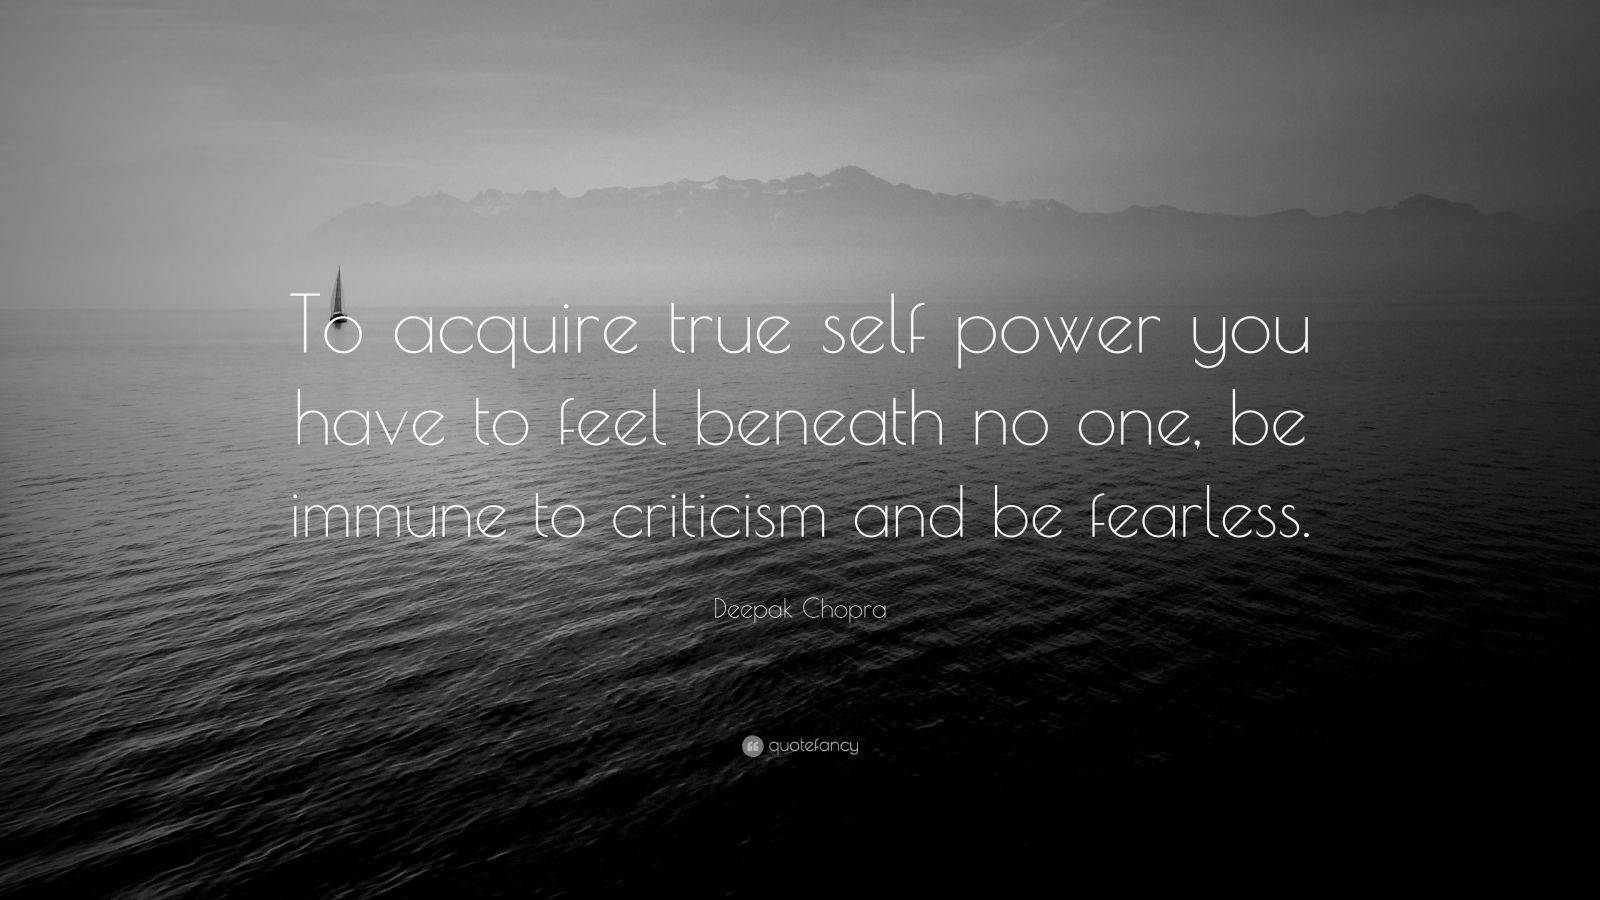 John Lennon Wallpaper Quotes Deepak Chopra Quote To Acquire True Self Power You Have